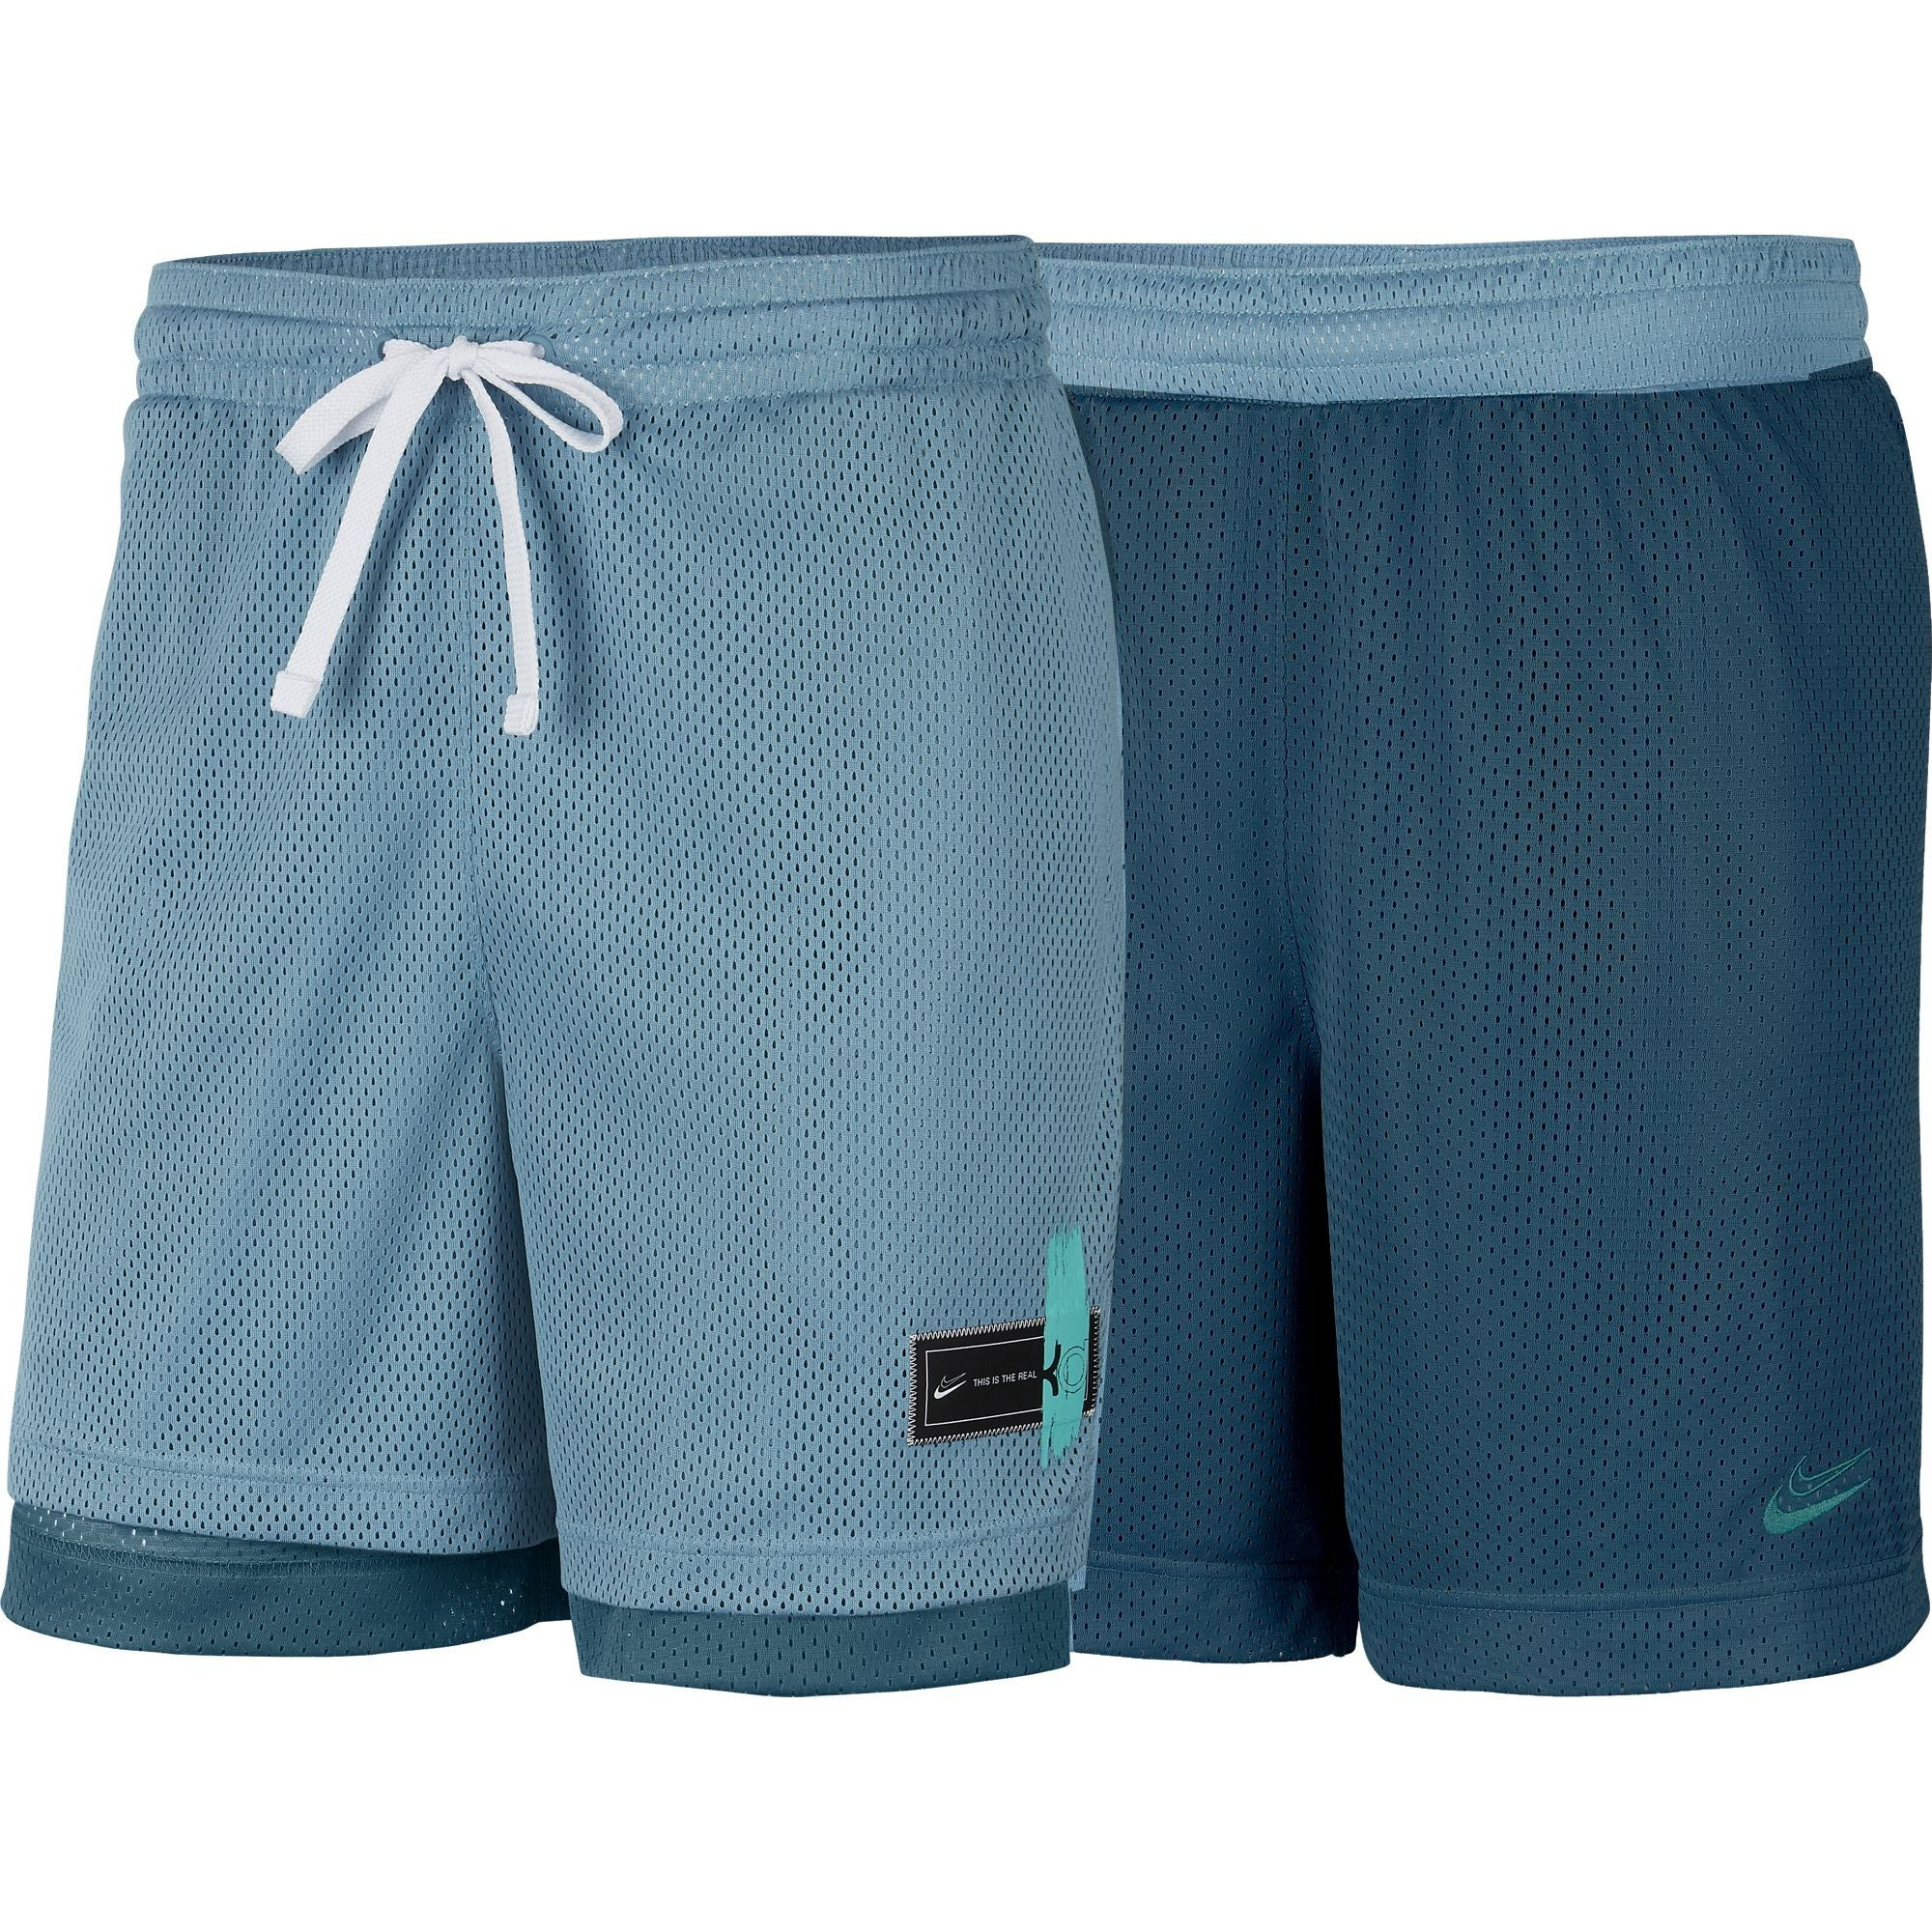 Nike KD Reversible Basketball Shorts - NK-CD0367-424